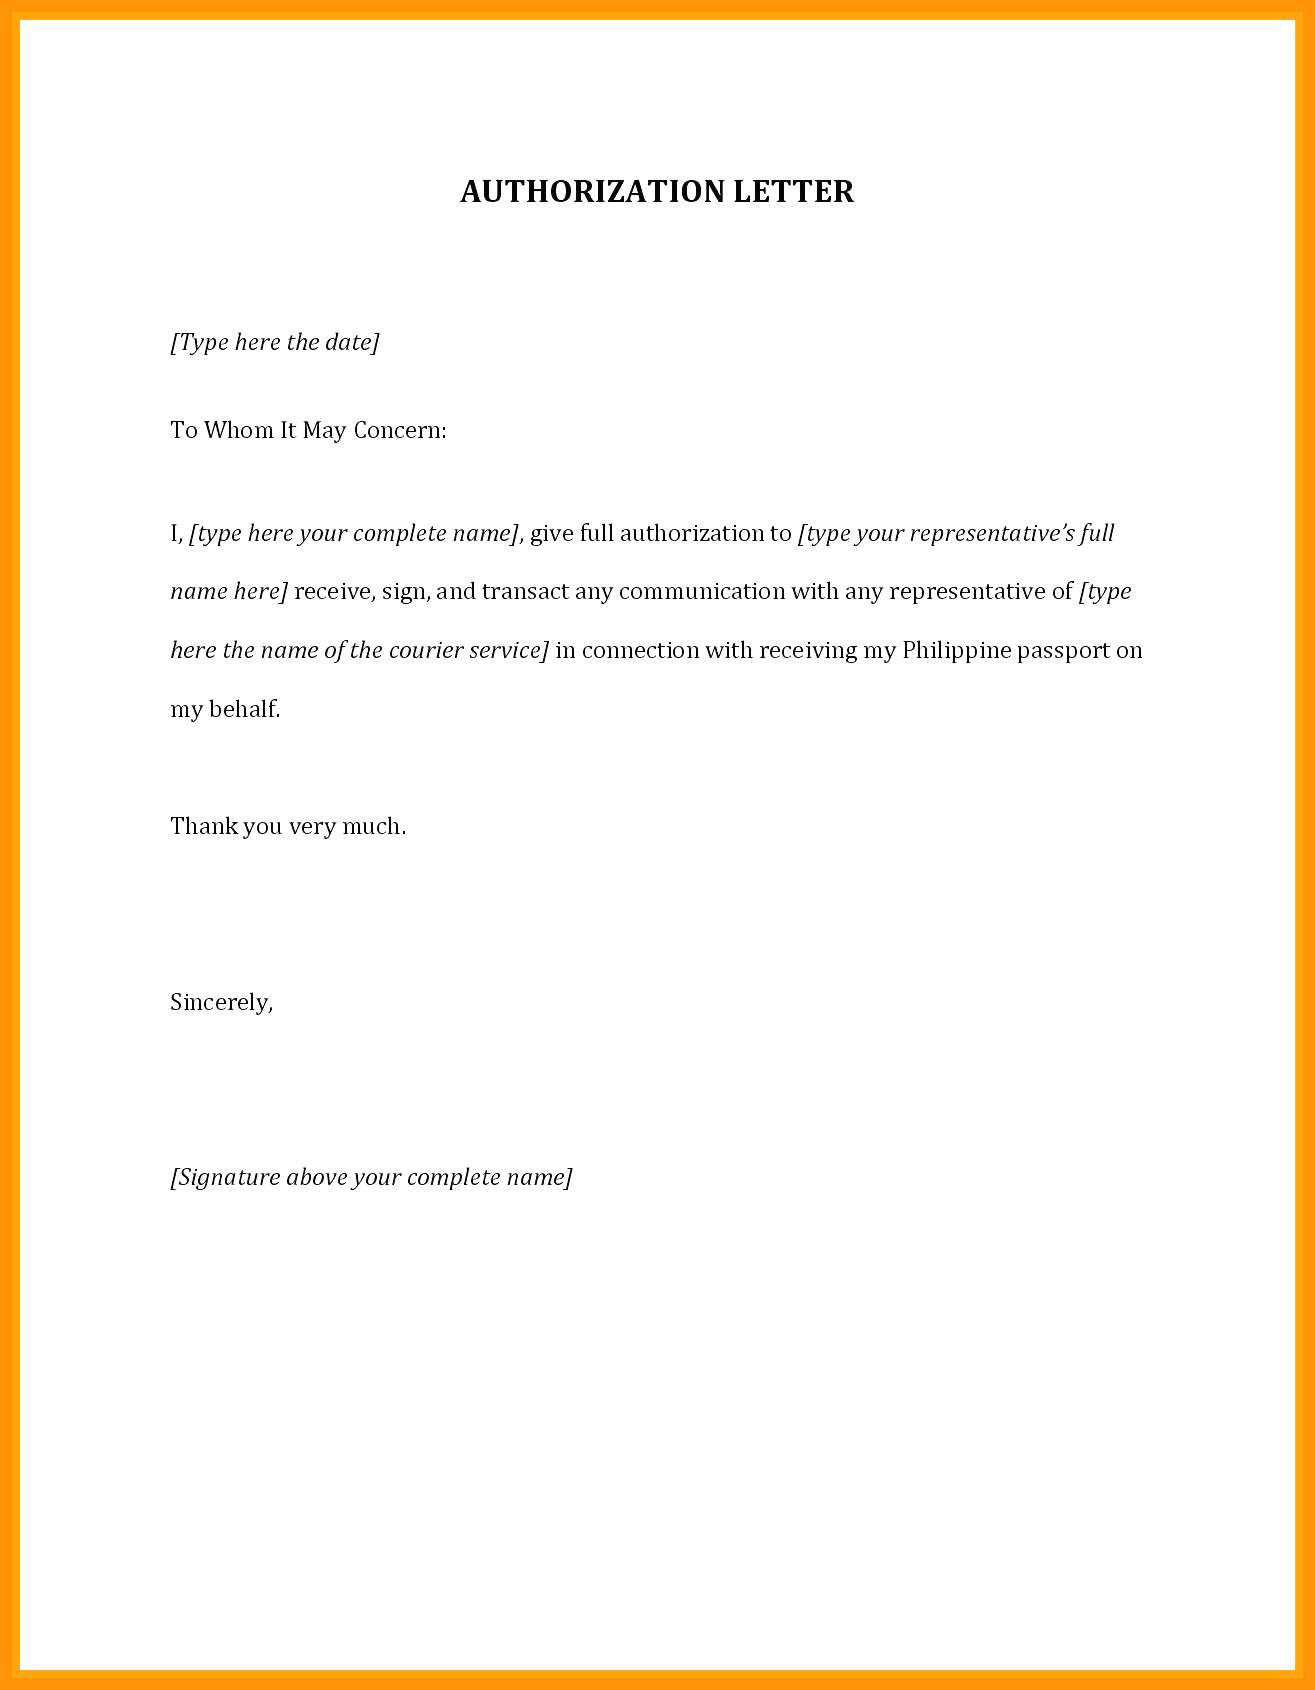 Sample Letter Of Authorization To Represent Authorization Letter